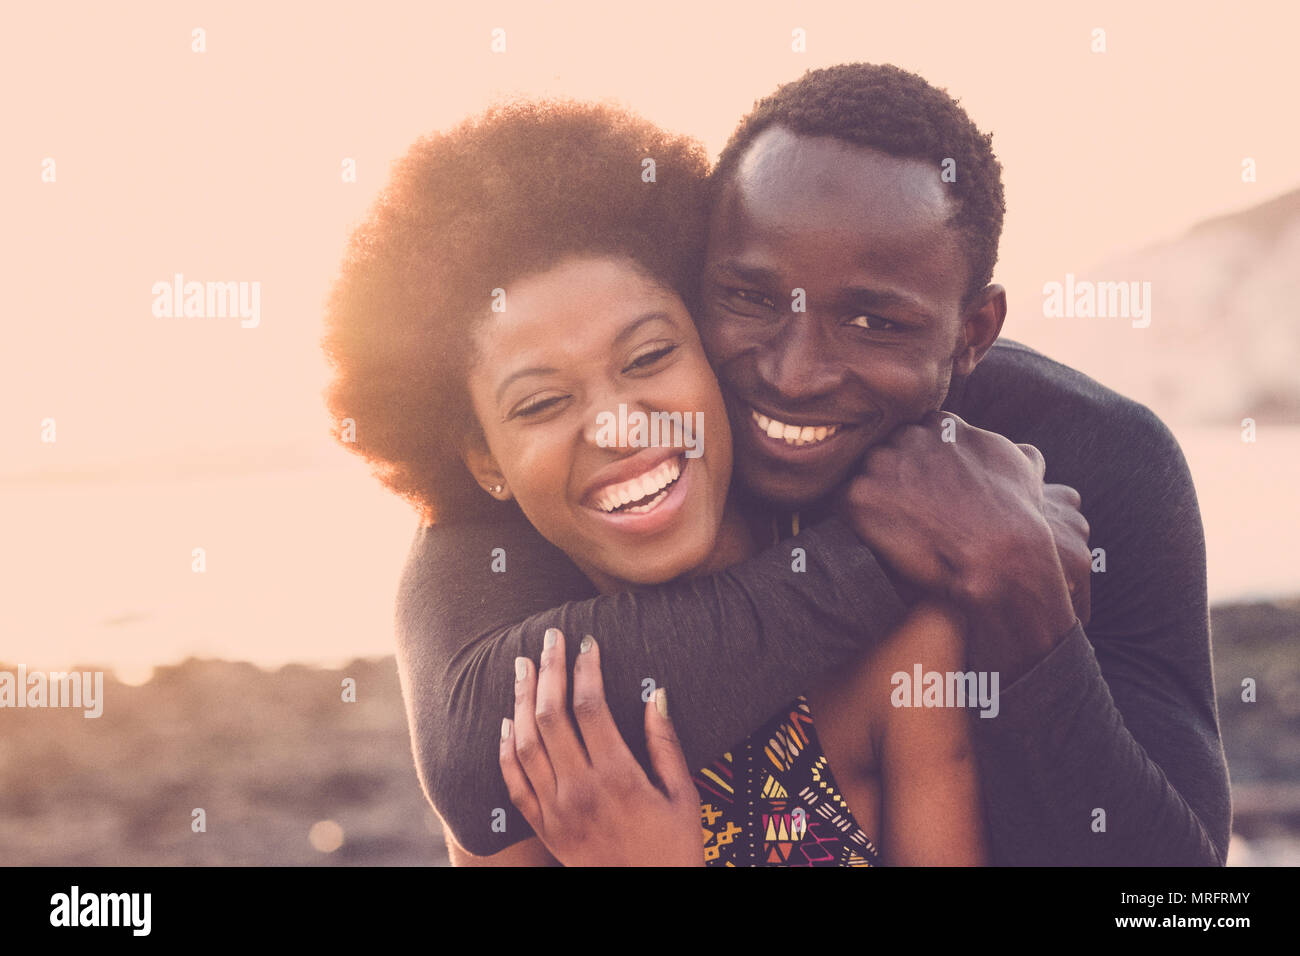 beautiful black race nice model couple man and woman young age hug and stay together with love and friendship. outdoor scenic place near the beach for - Stock Image